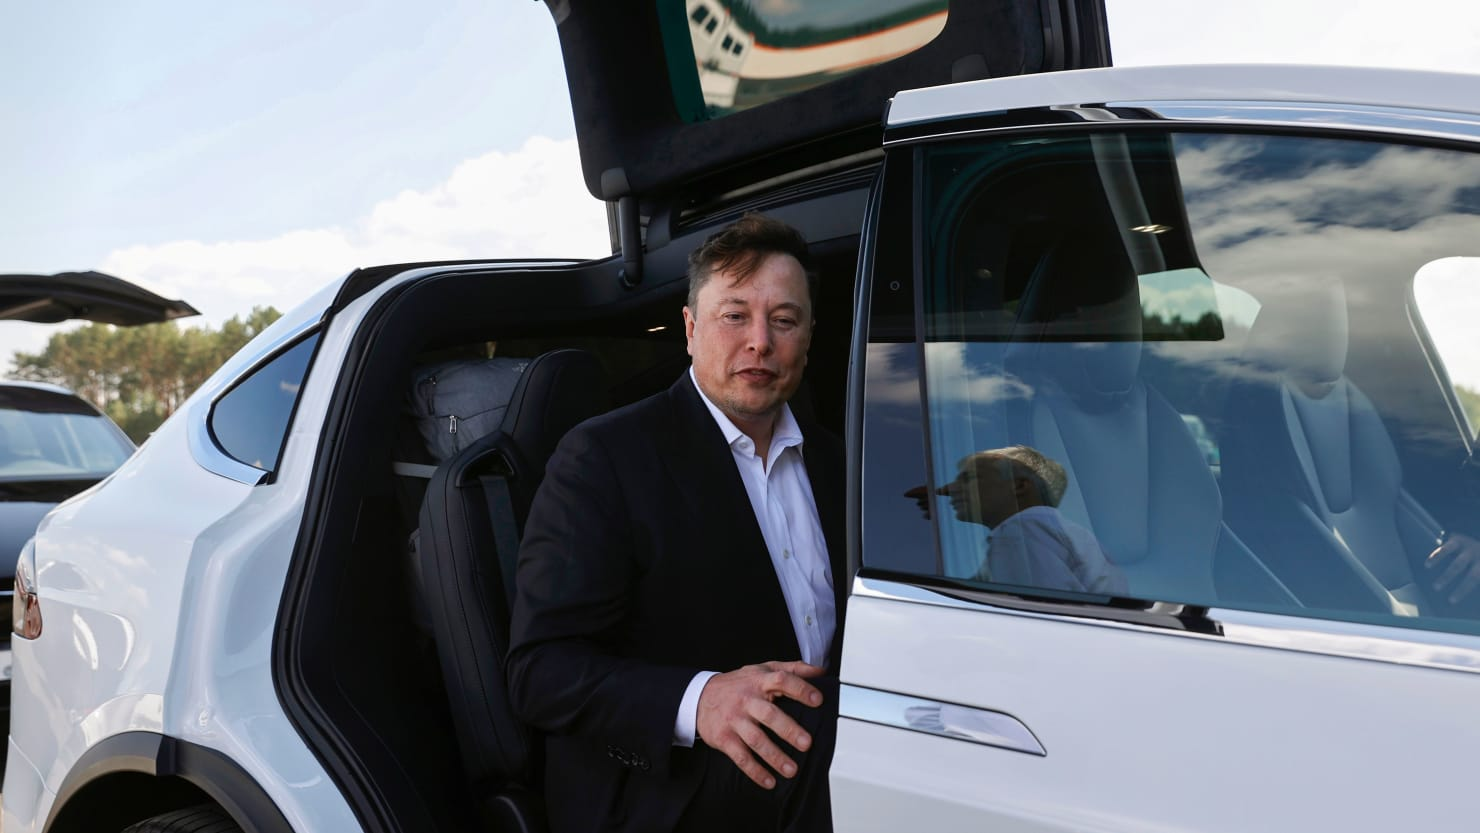 Tesla, SpaceX Insiders Slam 'Degenerate,' Raging Elon Musk in Vanity Fair Report